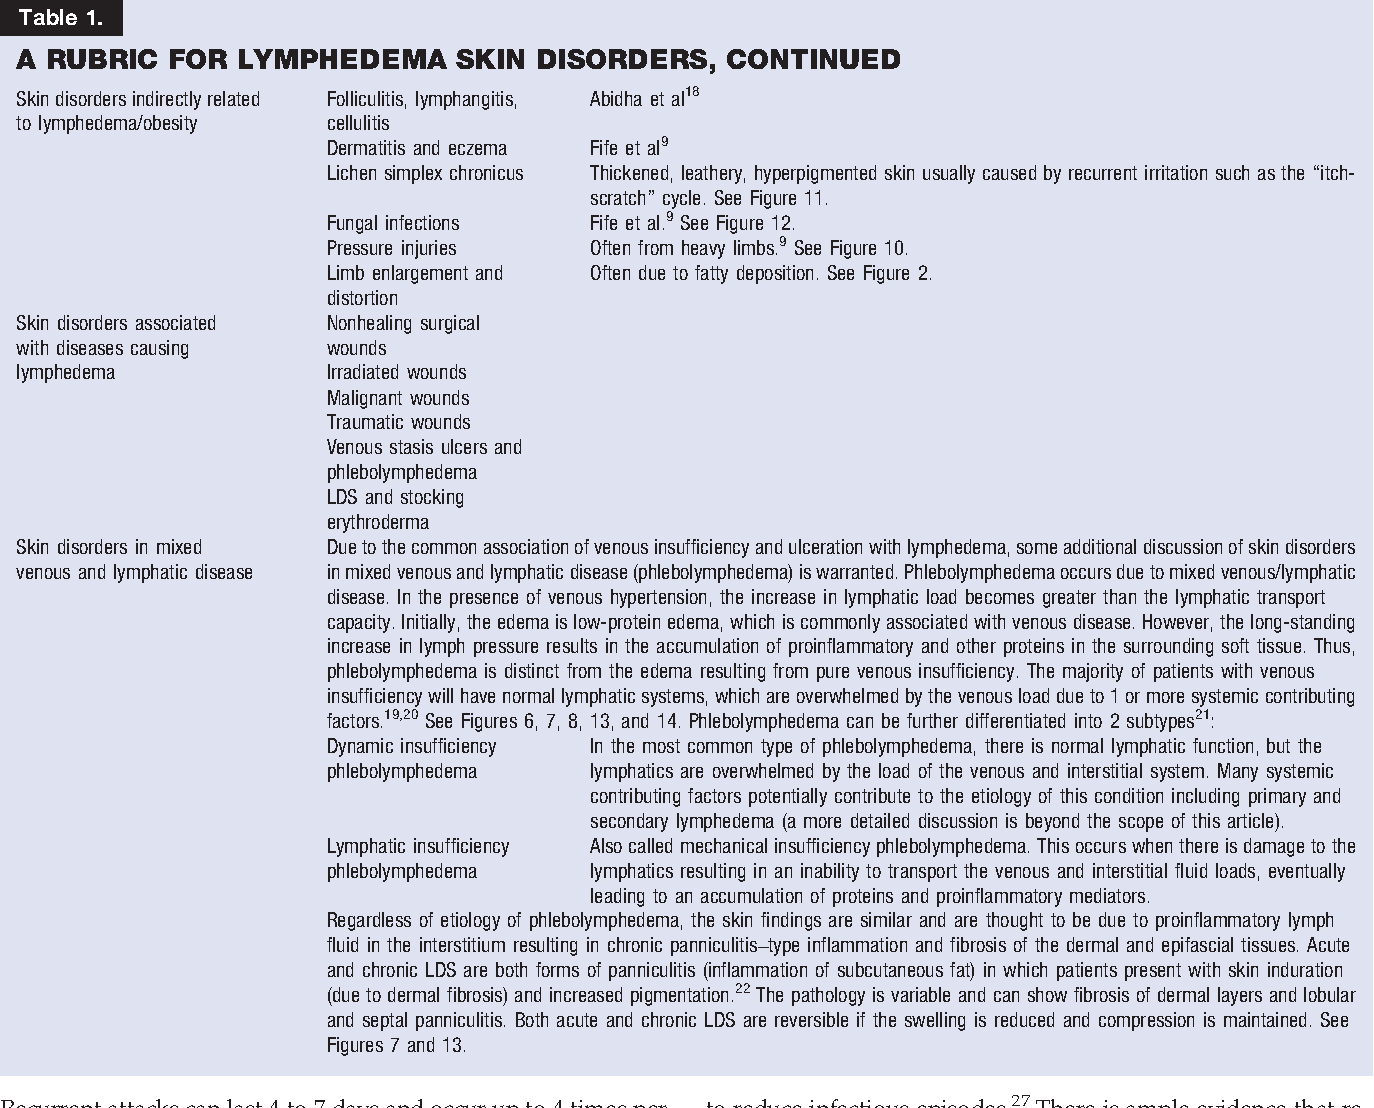 Skin and Wound Care in Lymphedema Patients: A Taxonomy